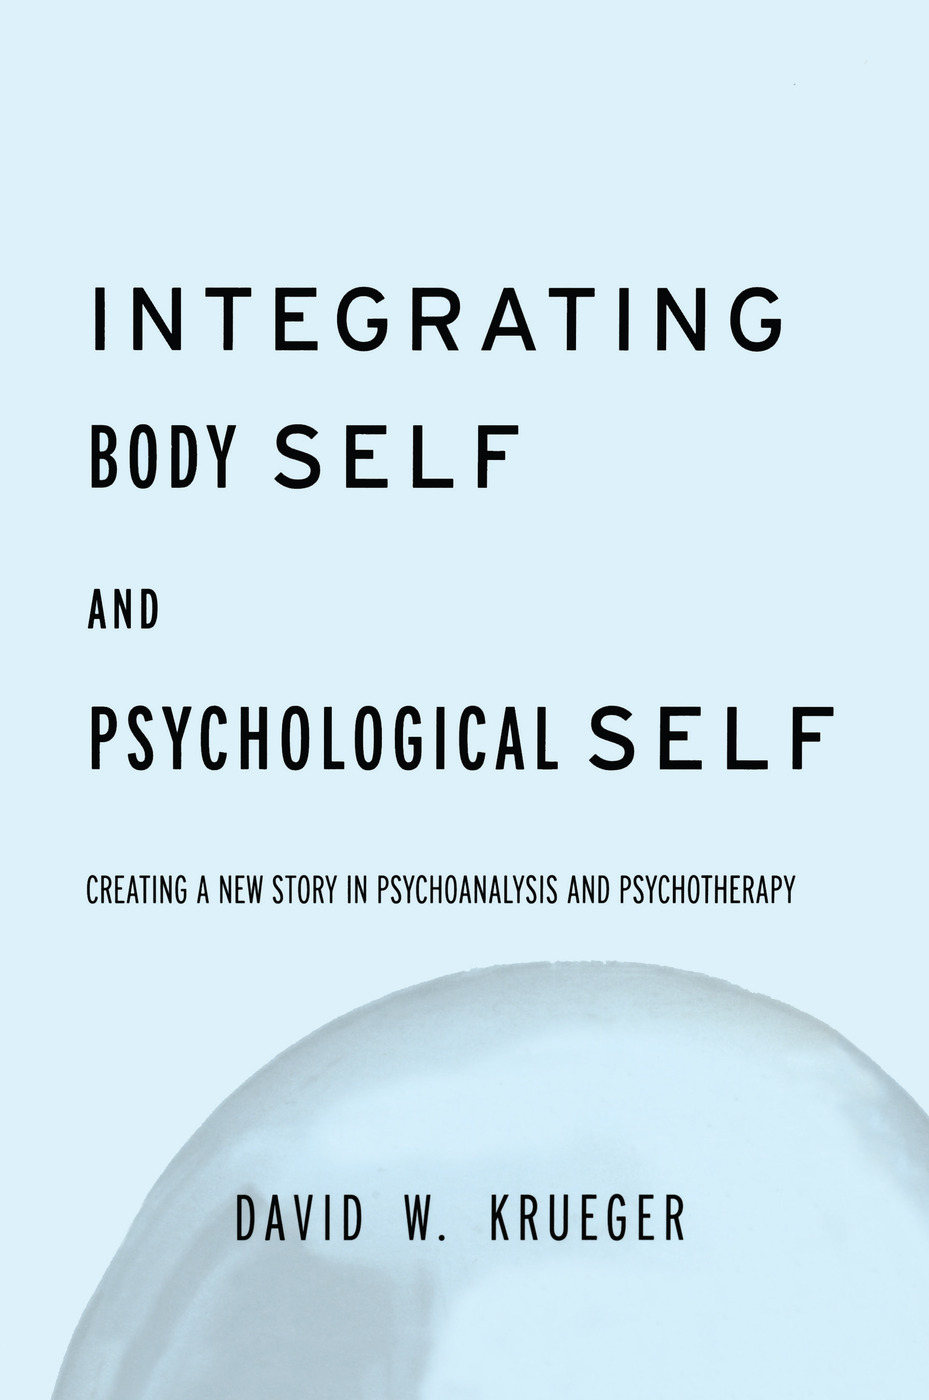 Integrating Body Self & Psychological Self